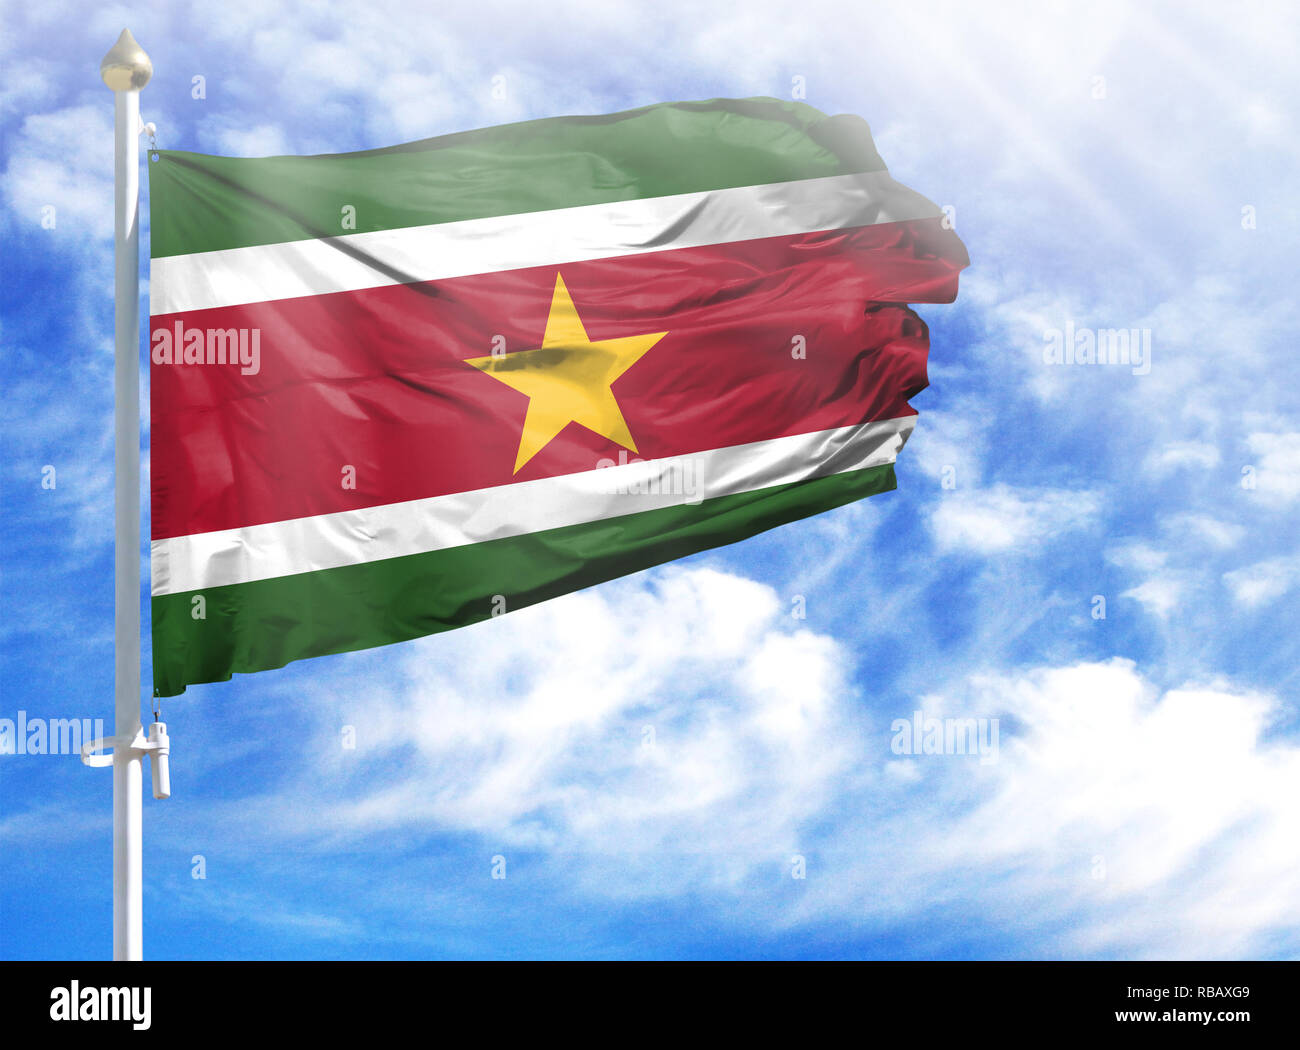 National flag of Suriname on a flagpole in front of blue sky. - Stock Image